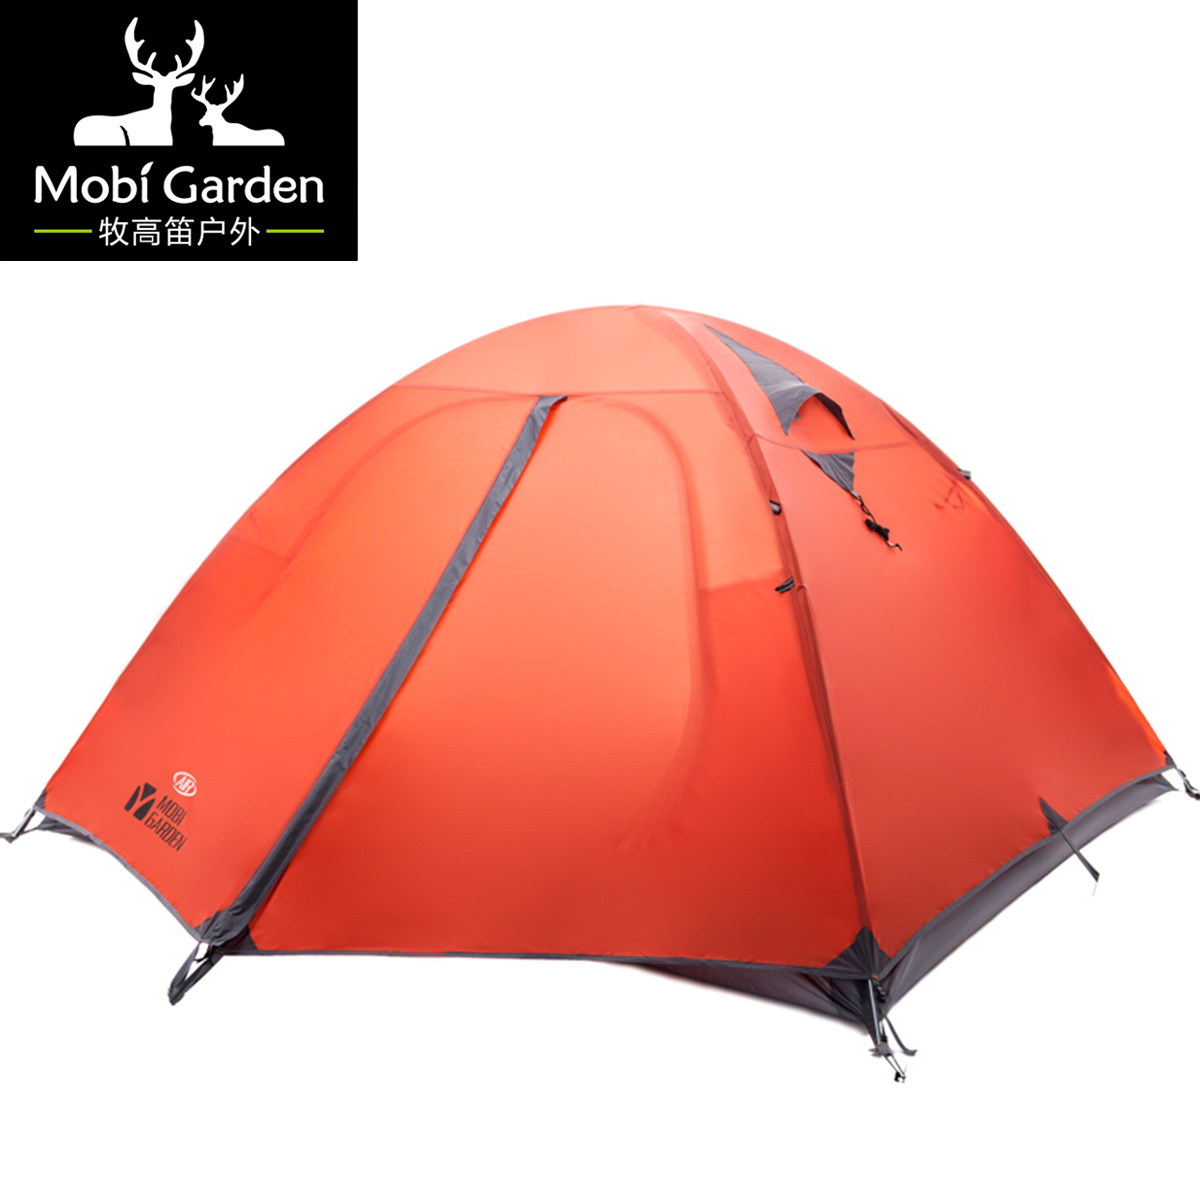 Cold Mountain 3AIR tent Outdoor hiking camping aluminum alloy 3-4Person tent  waterproof windproof breathable high quality outdoor 2 person camping tent double layer aluminum rod ultralight tent with snow skirt oneroad windsnow 2 plus